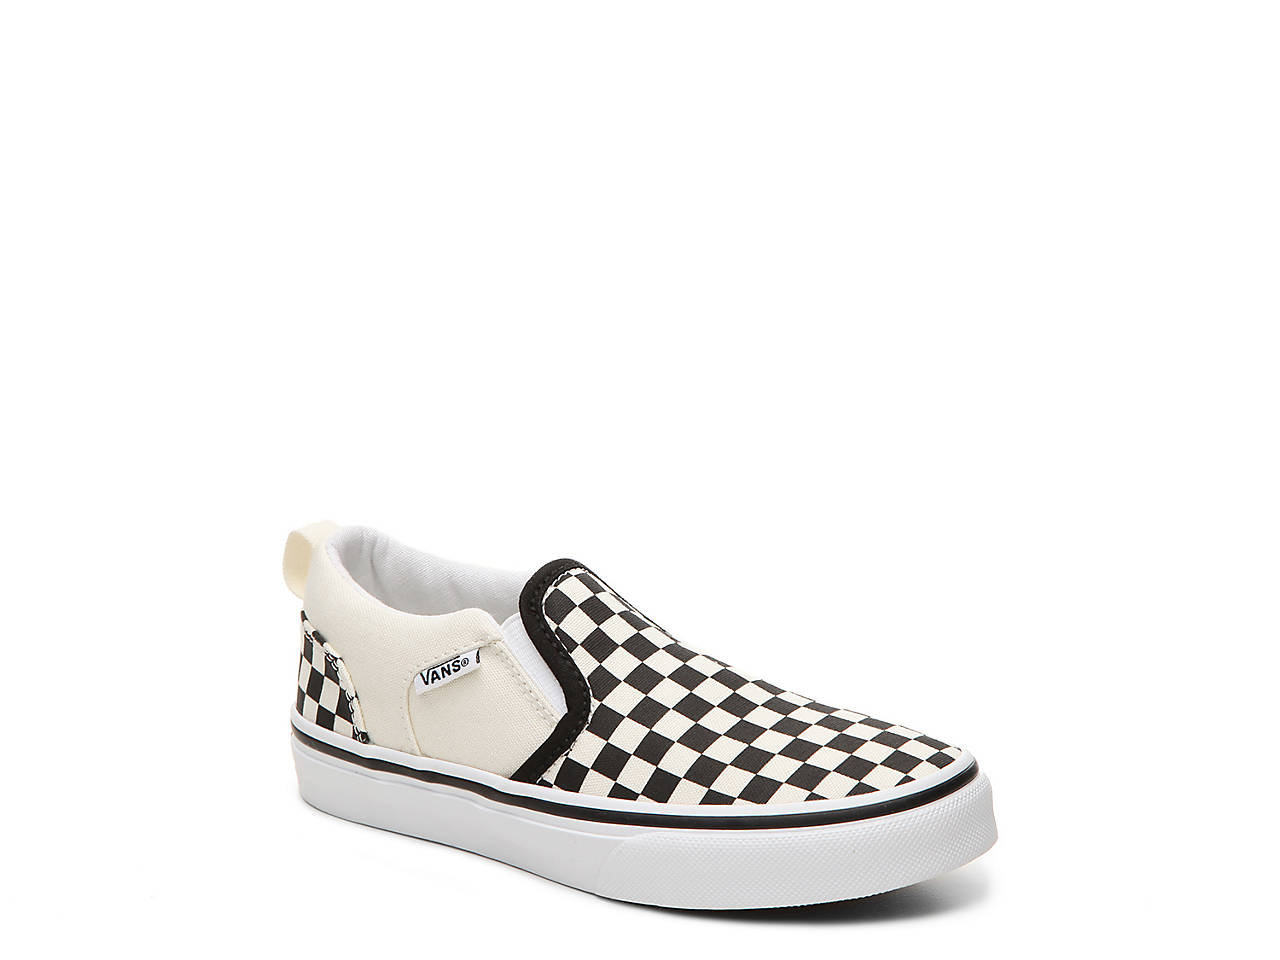 ffcc62bf09 Vans Asher Checkers Toddler   Youth Slip-On Sneaker Kids Shoes